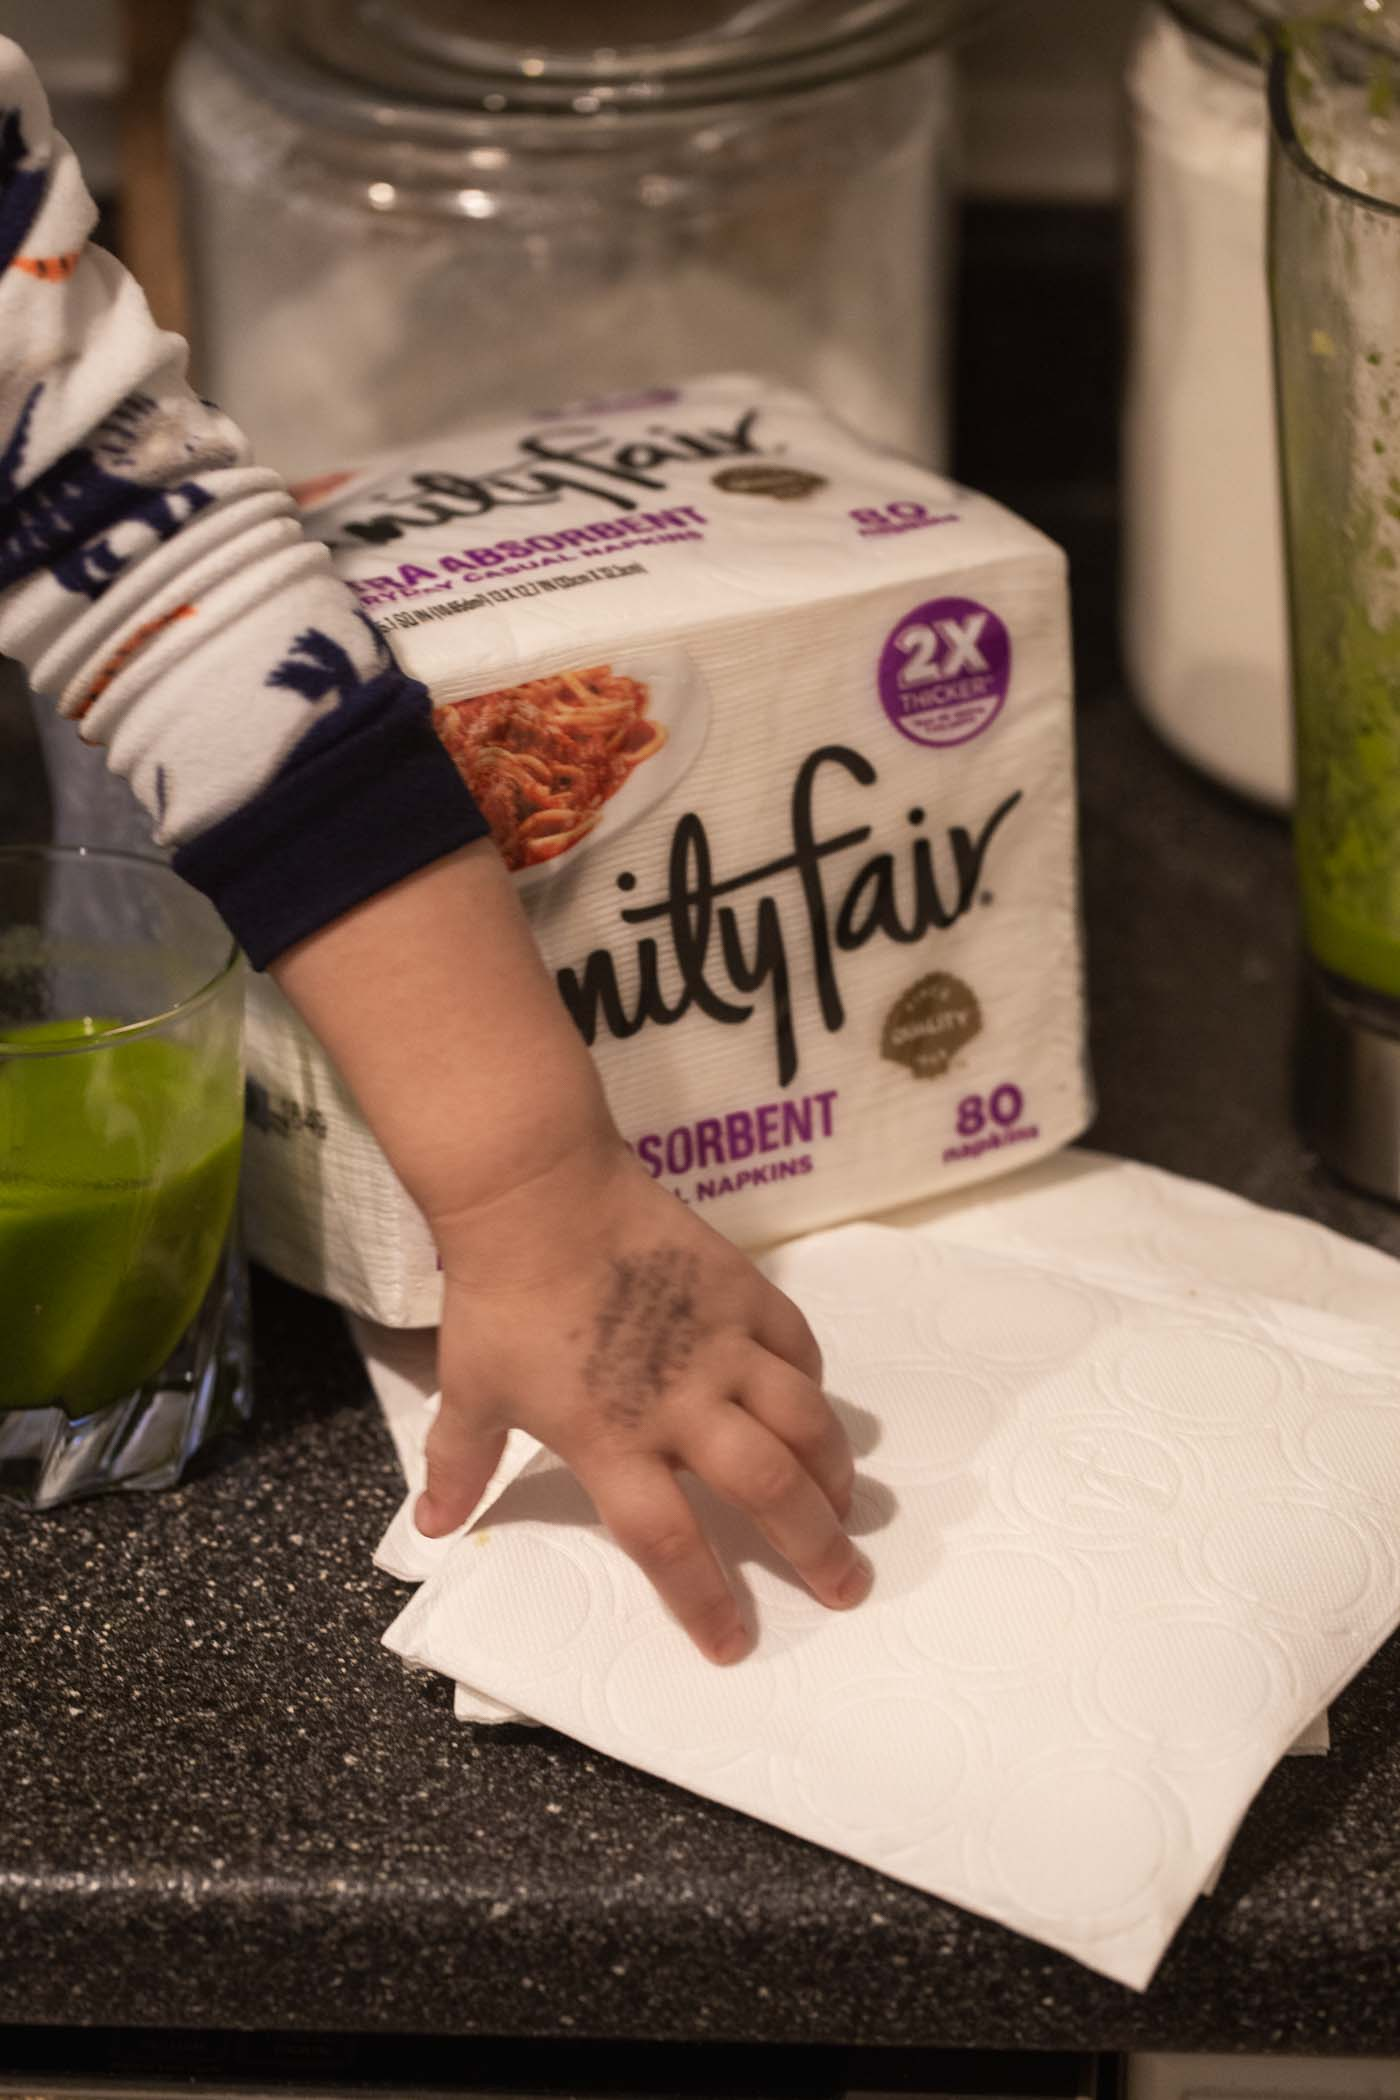 Vanity Fair Napkins and Our Favorite Green Smoothie